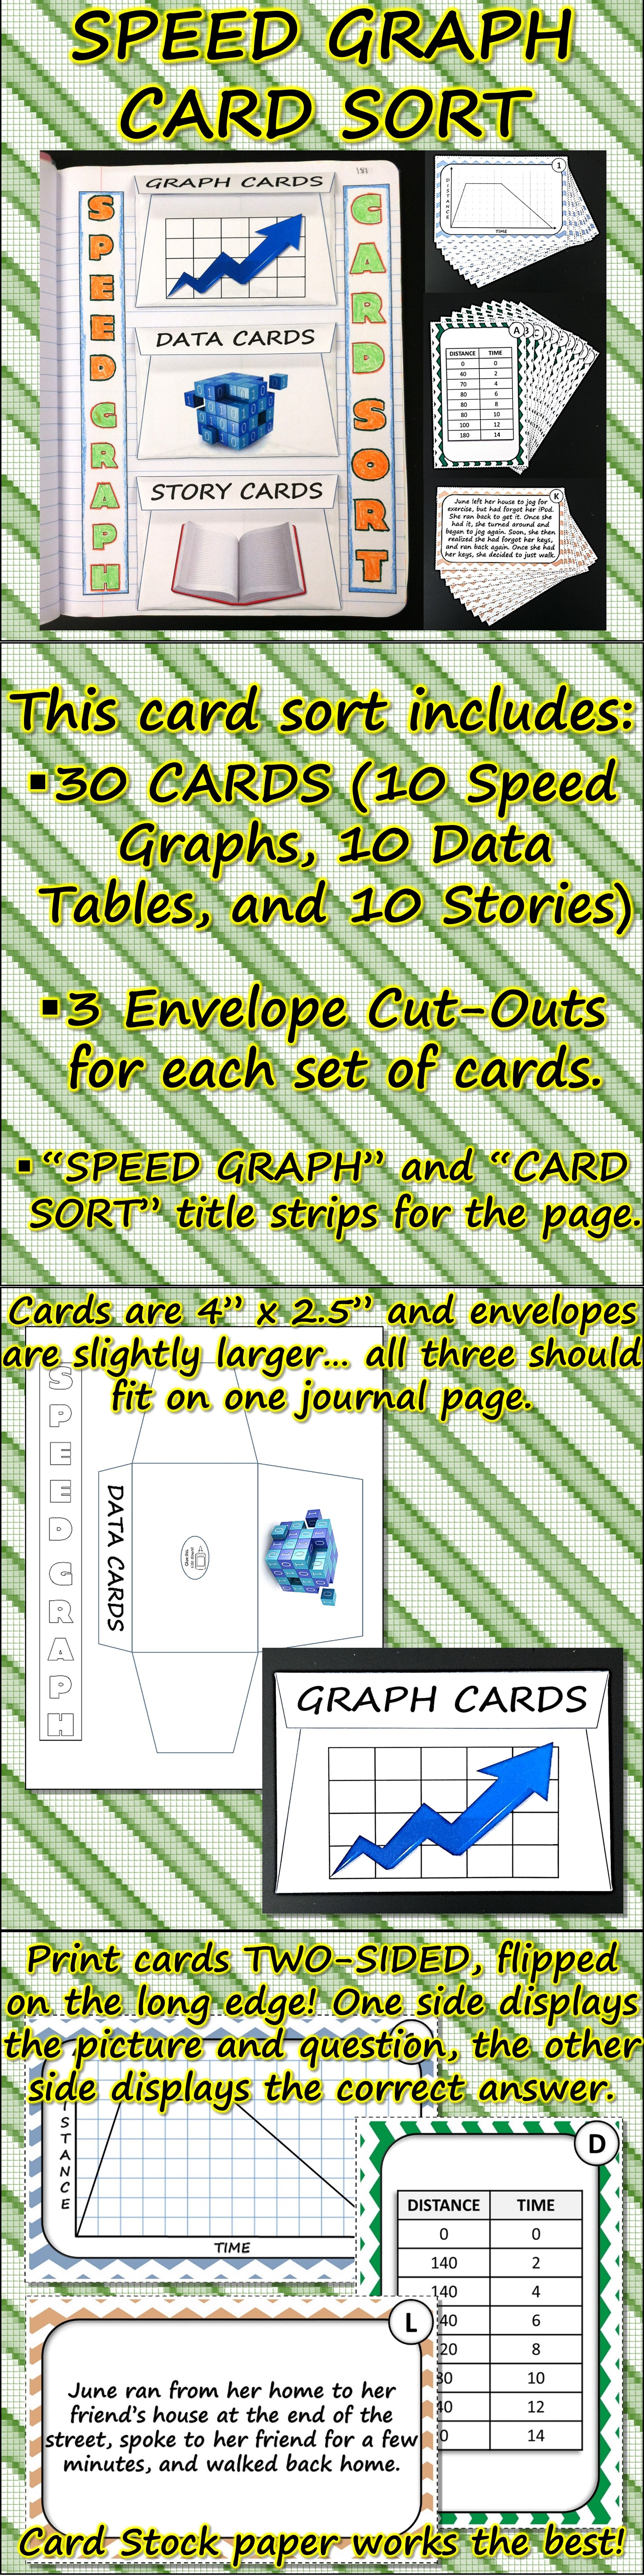 Science Journal Speed Graph Card Sort